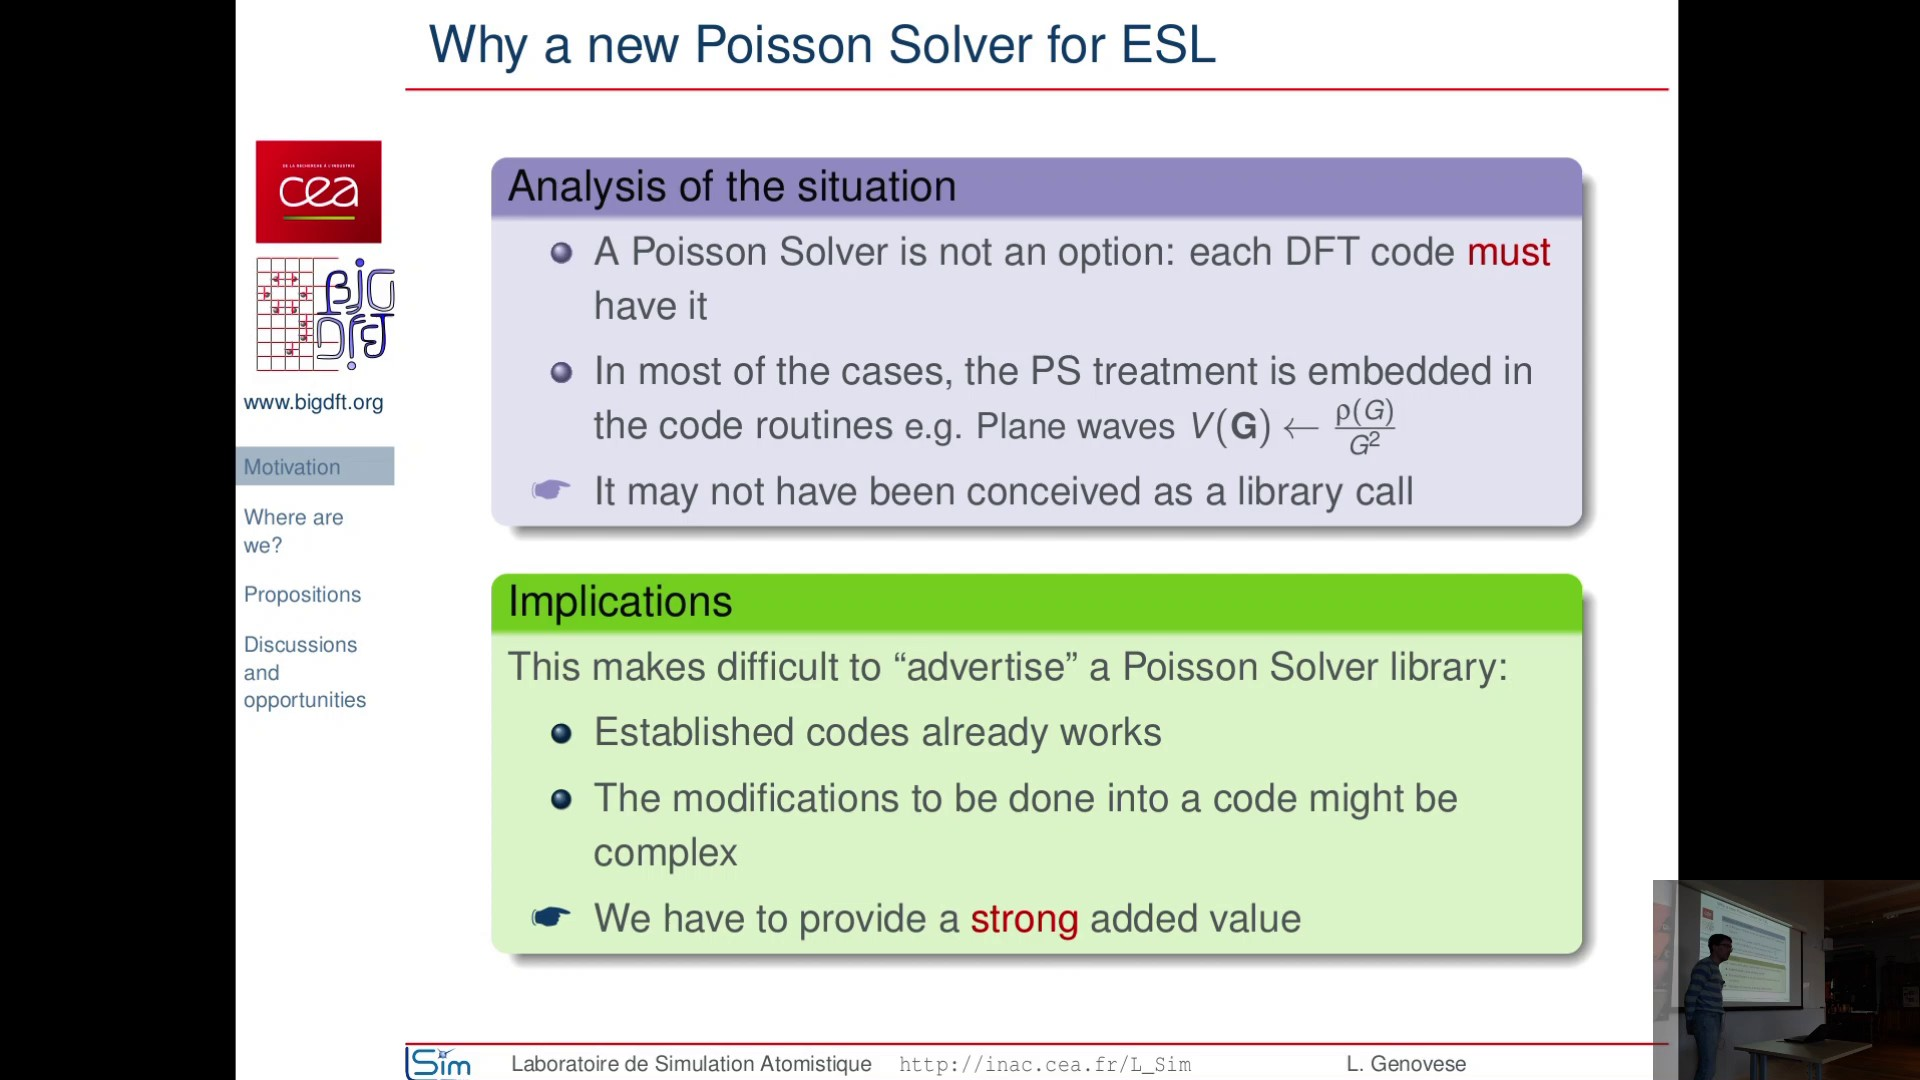 Thumbnail of Why a new Poisson solver for ESL